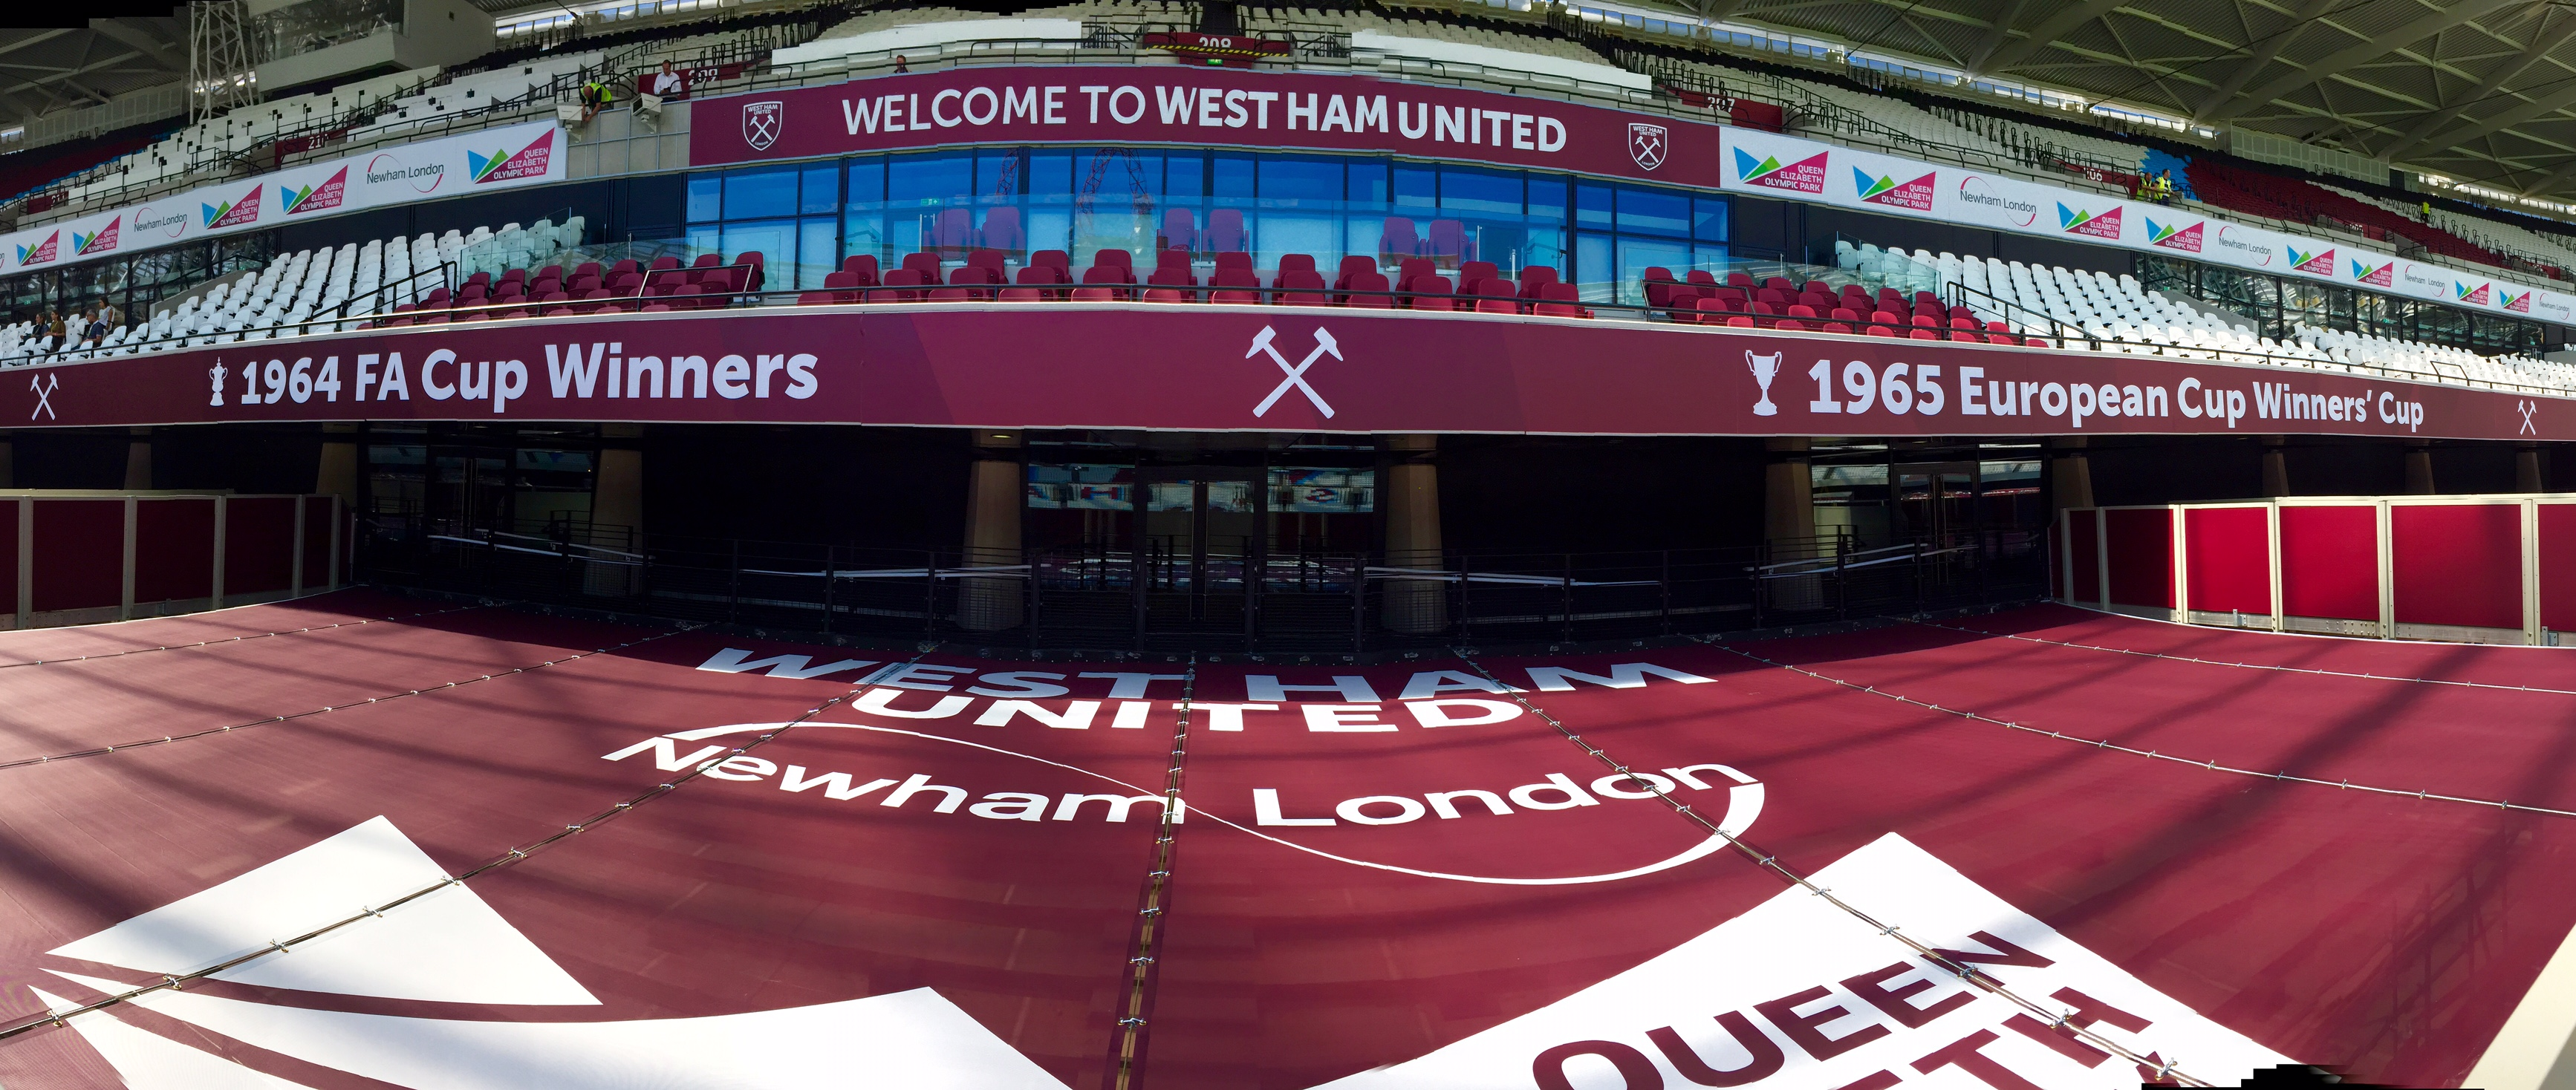 Retractable Canopy at West Ham Stadium